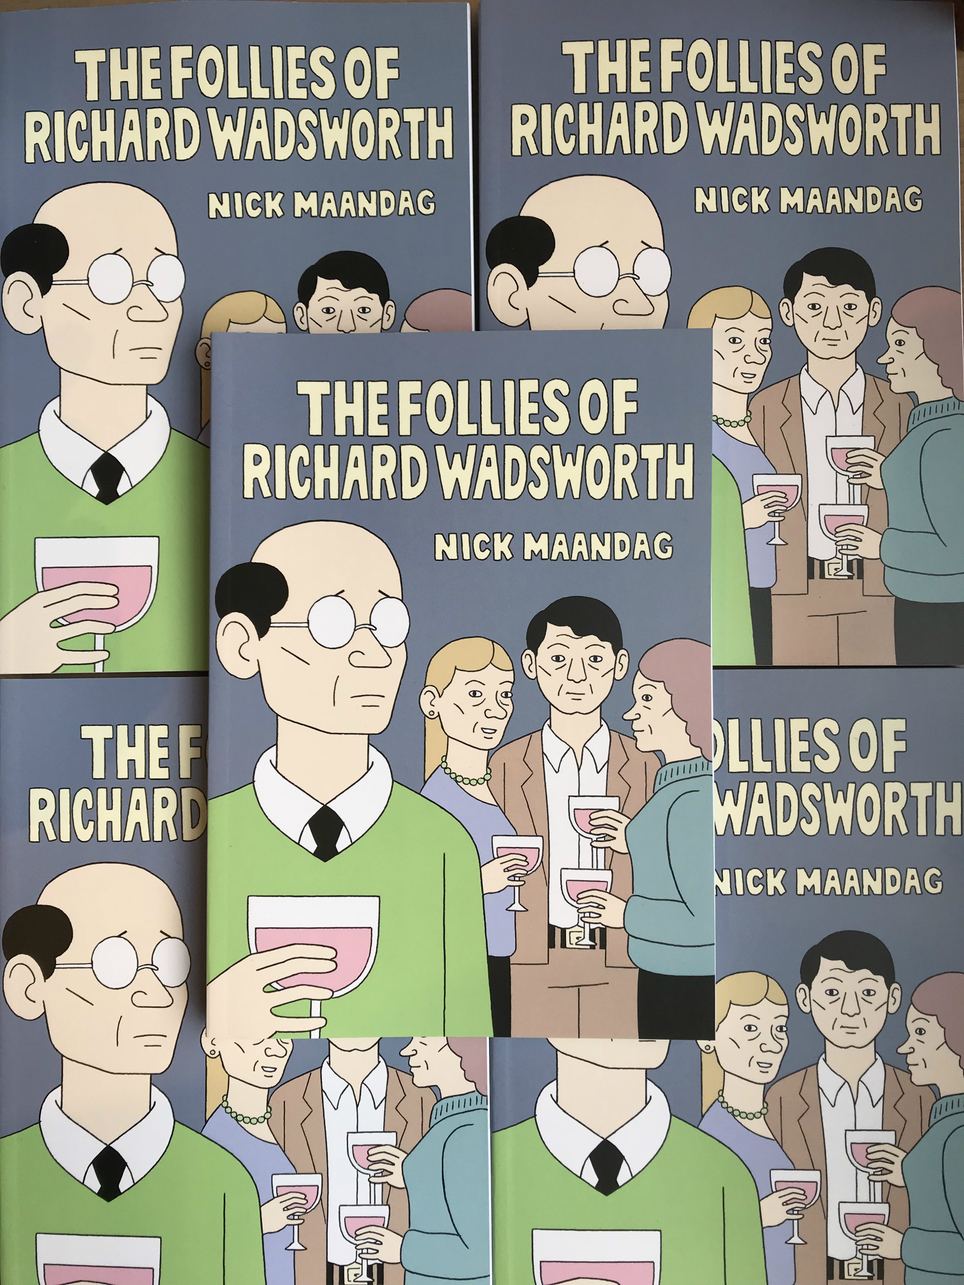 New D&Q: Nick Mandaag's The Follies of Richard Wadsworth is out now!